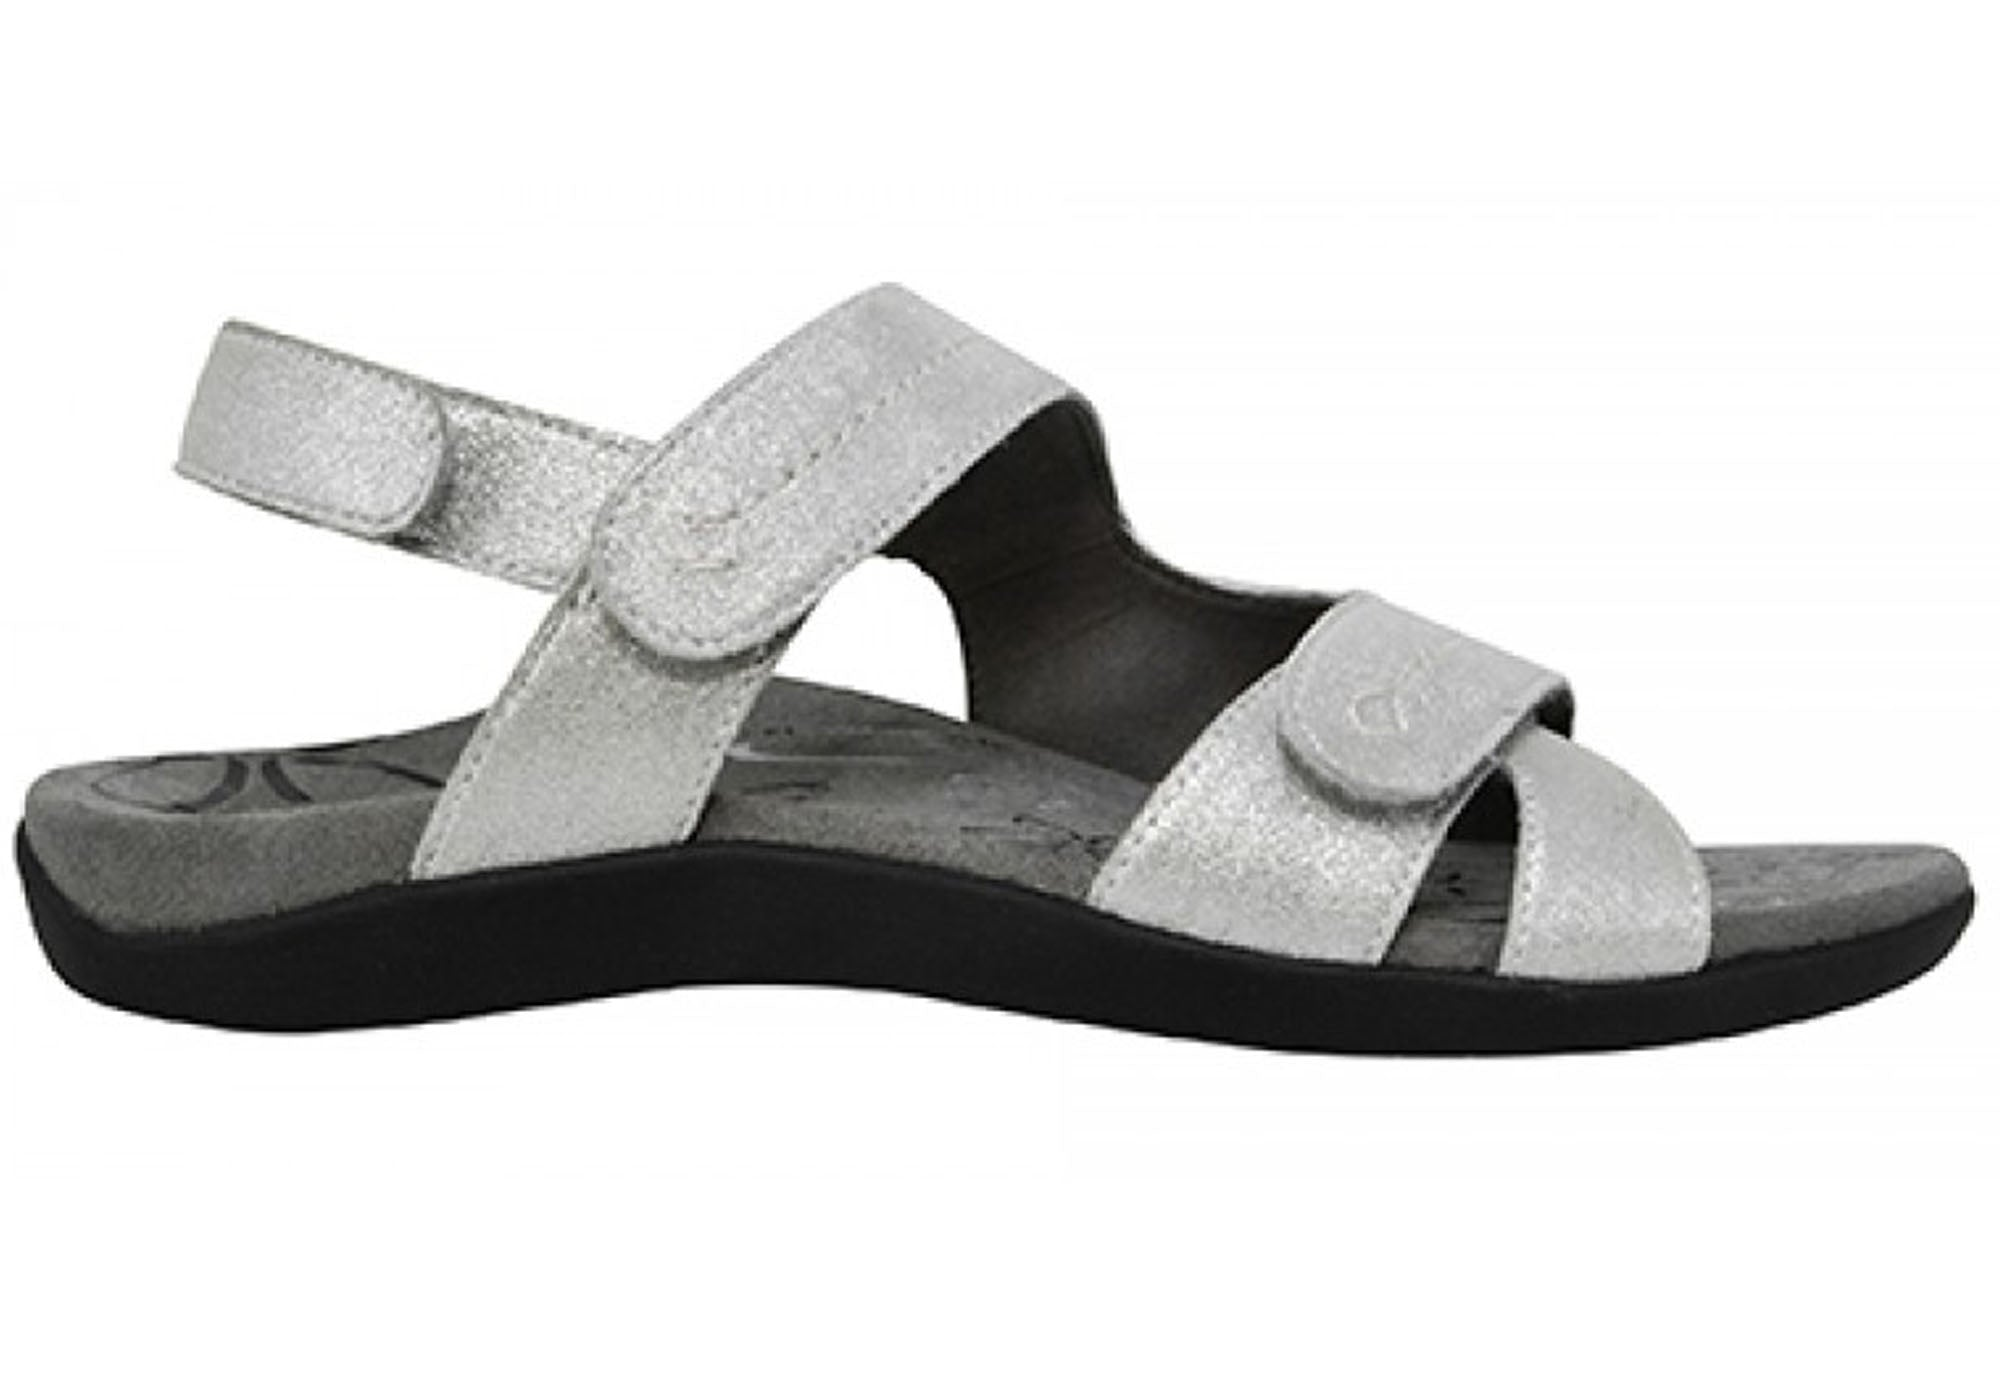 5a7eea46a0d Home Scholl Orthaheel Maya Womens Comfortable Supportive Leather Sandals.  Black ...